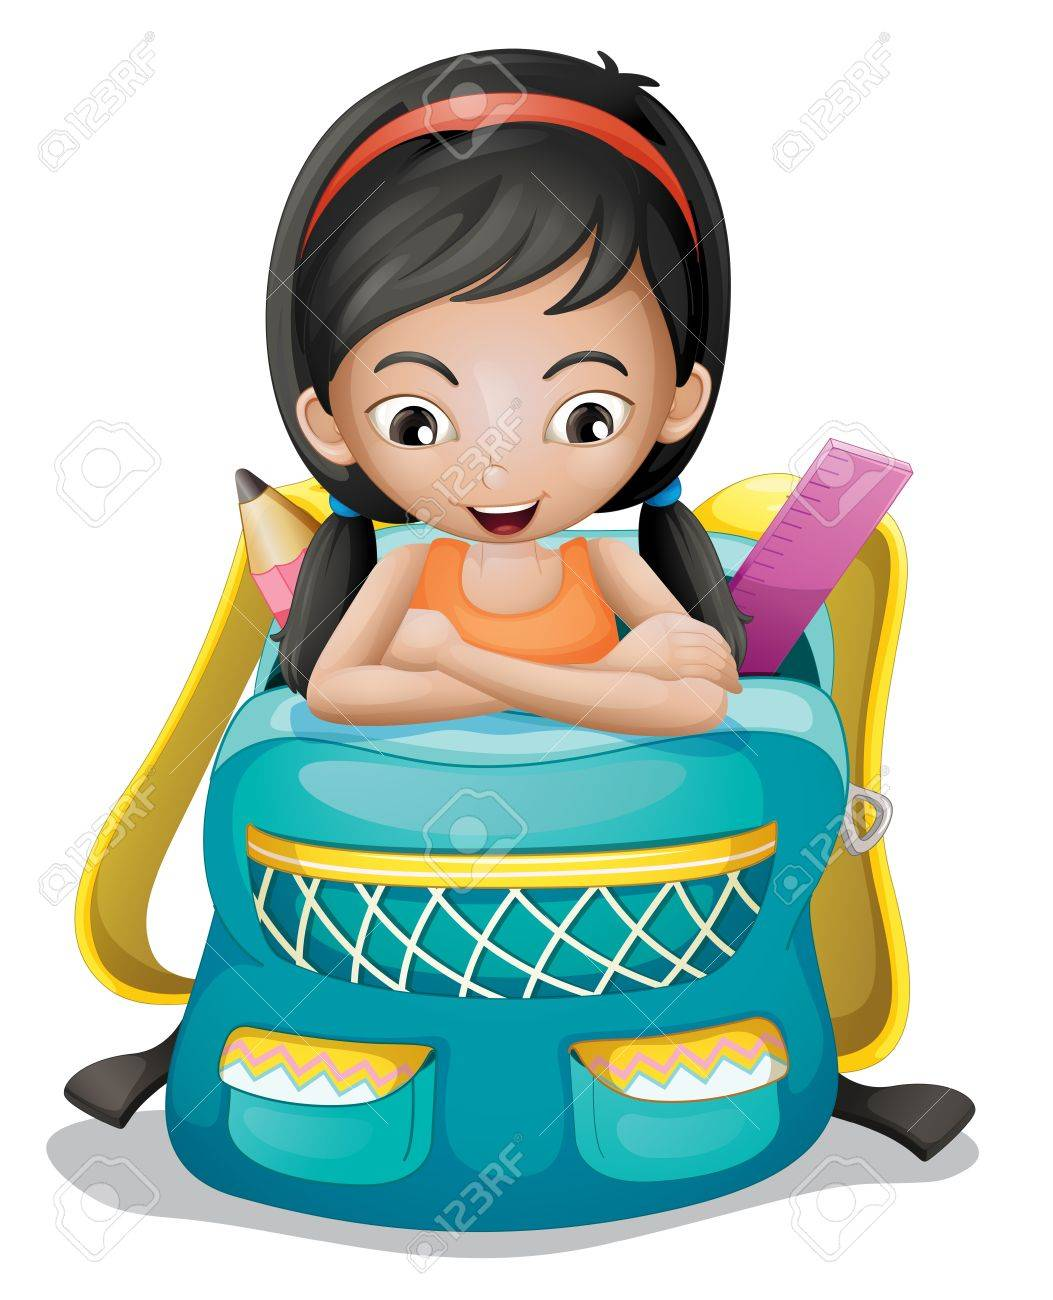 Illustration of a girl inside a school bag on a white background Stock Vector - 20889036